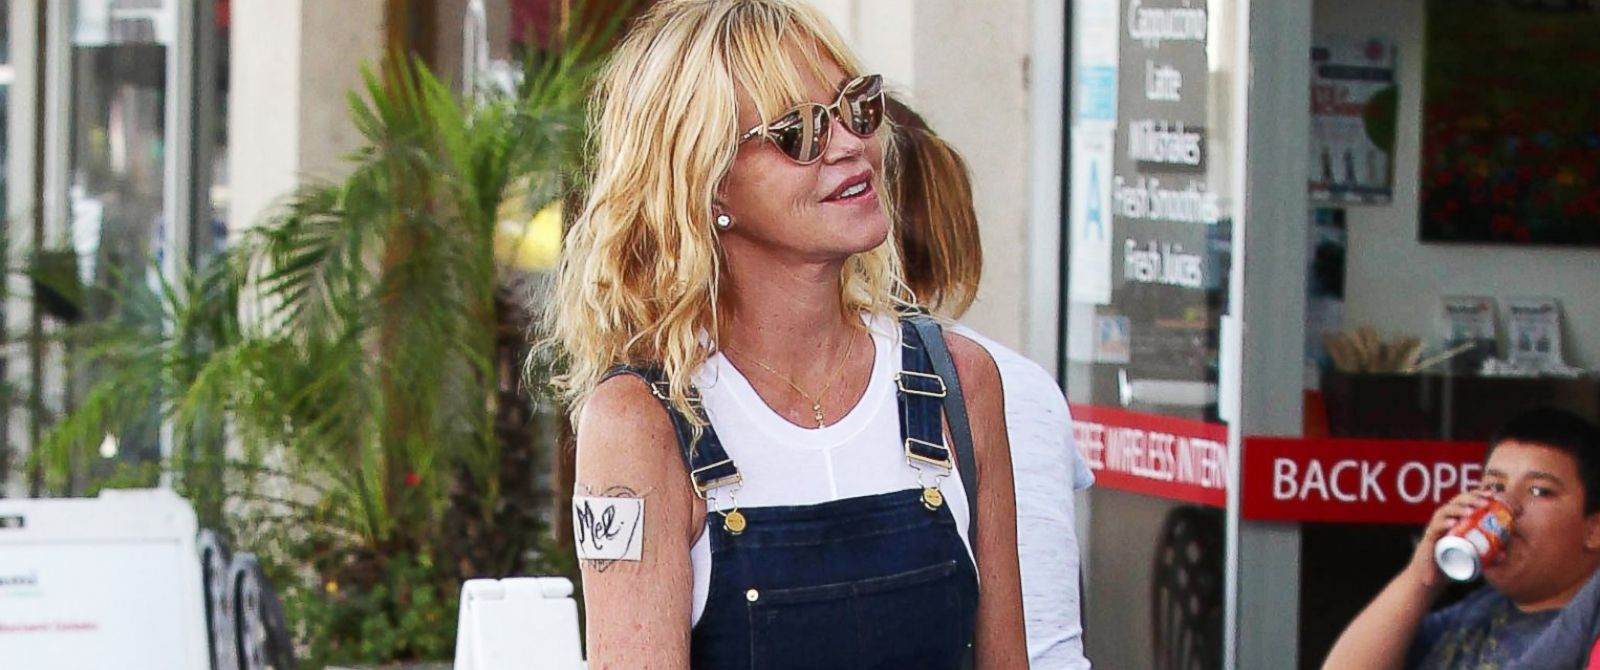 PHOTO: Actress Melanie Griffith is seen on July 28, 2014 in Los Angeles, Calif.